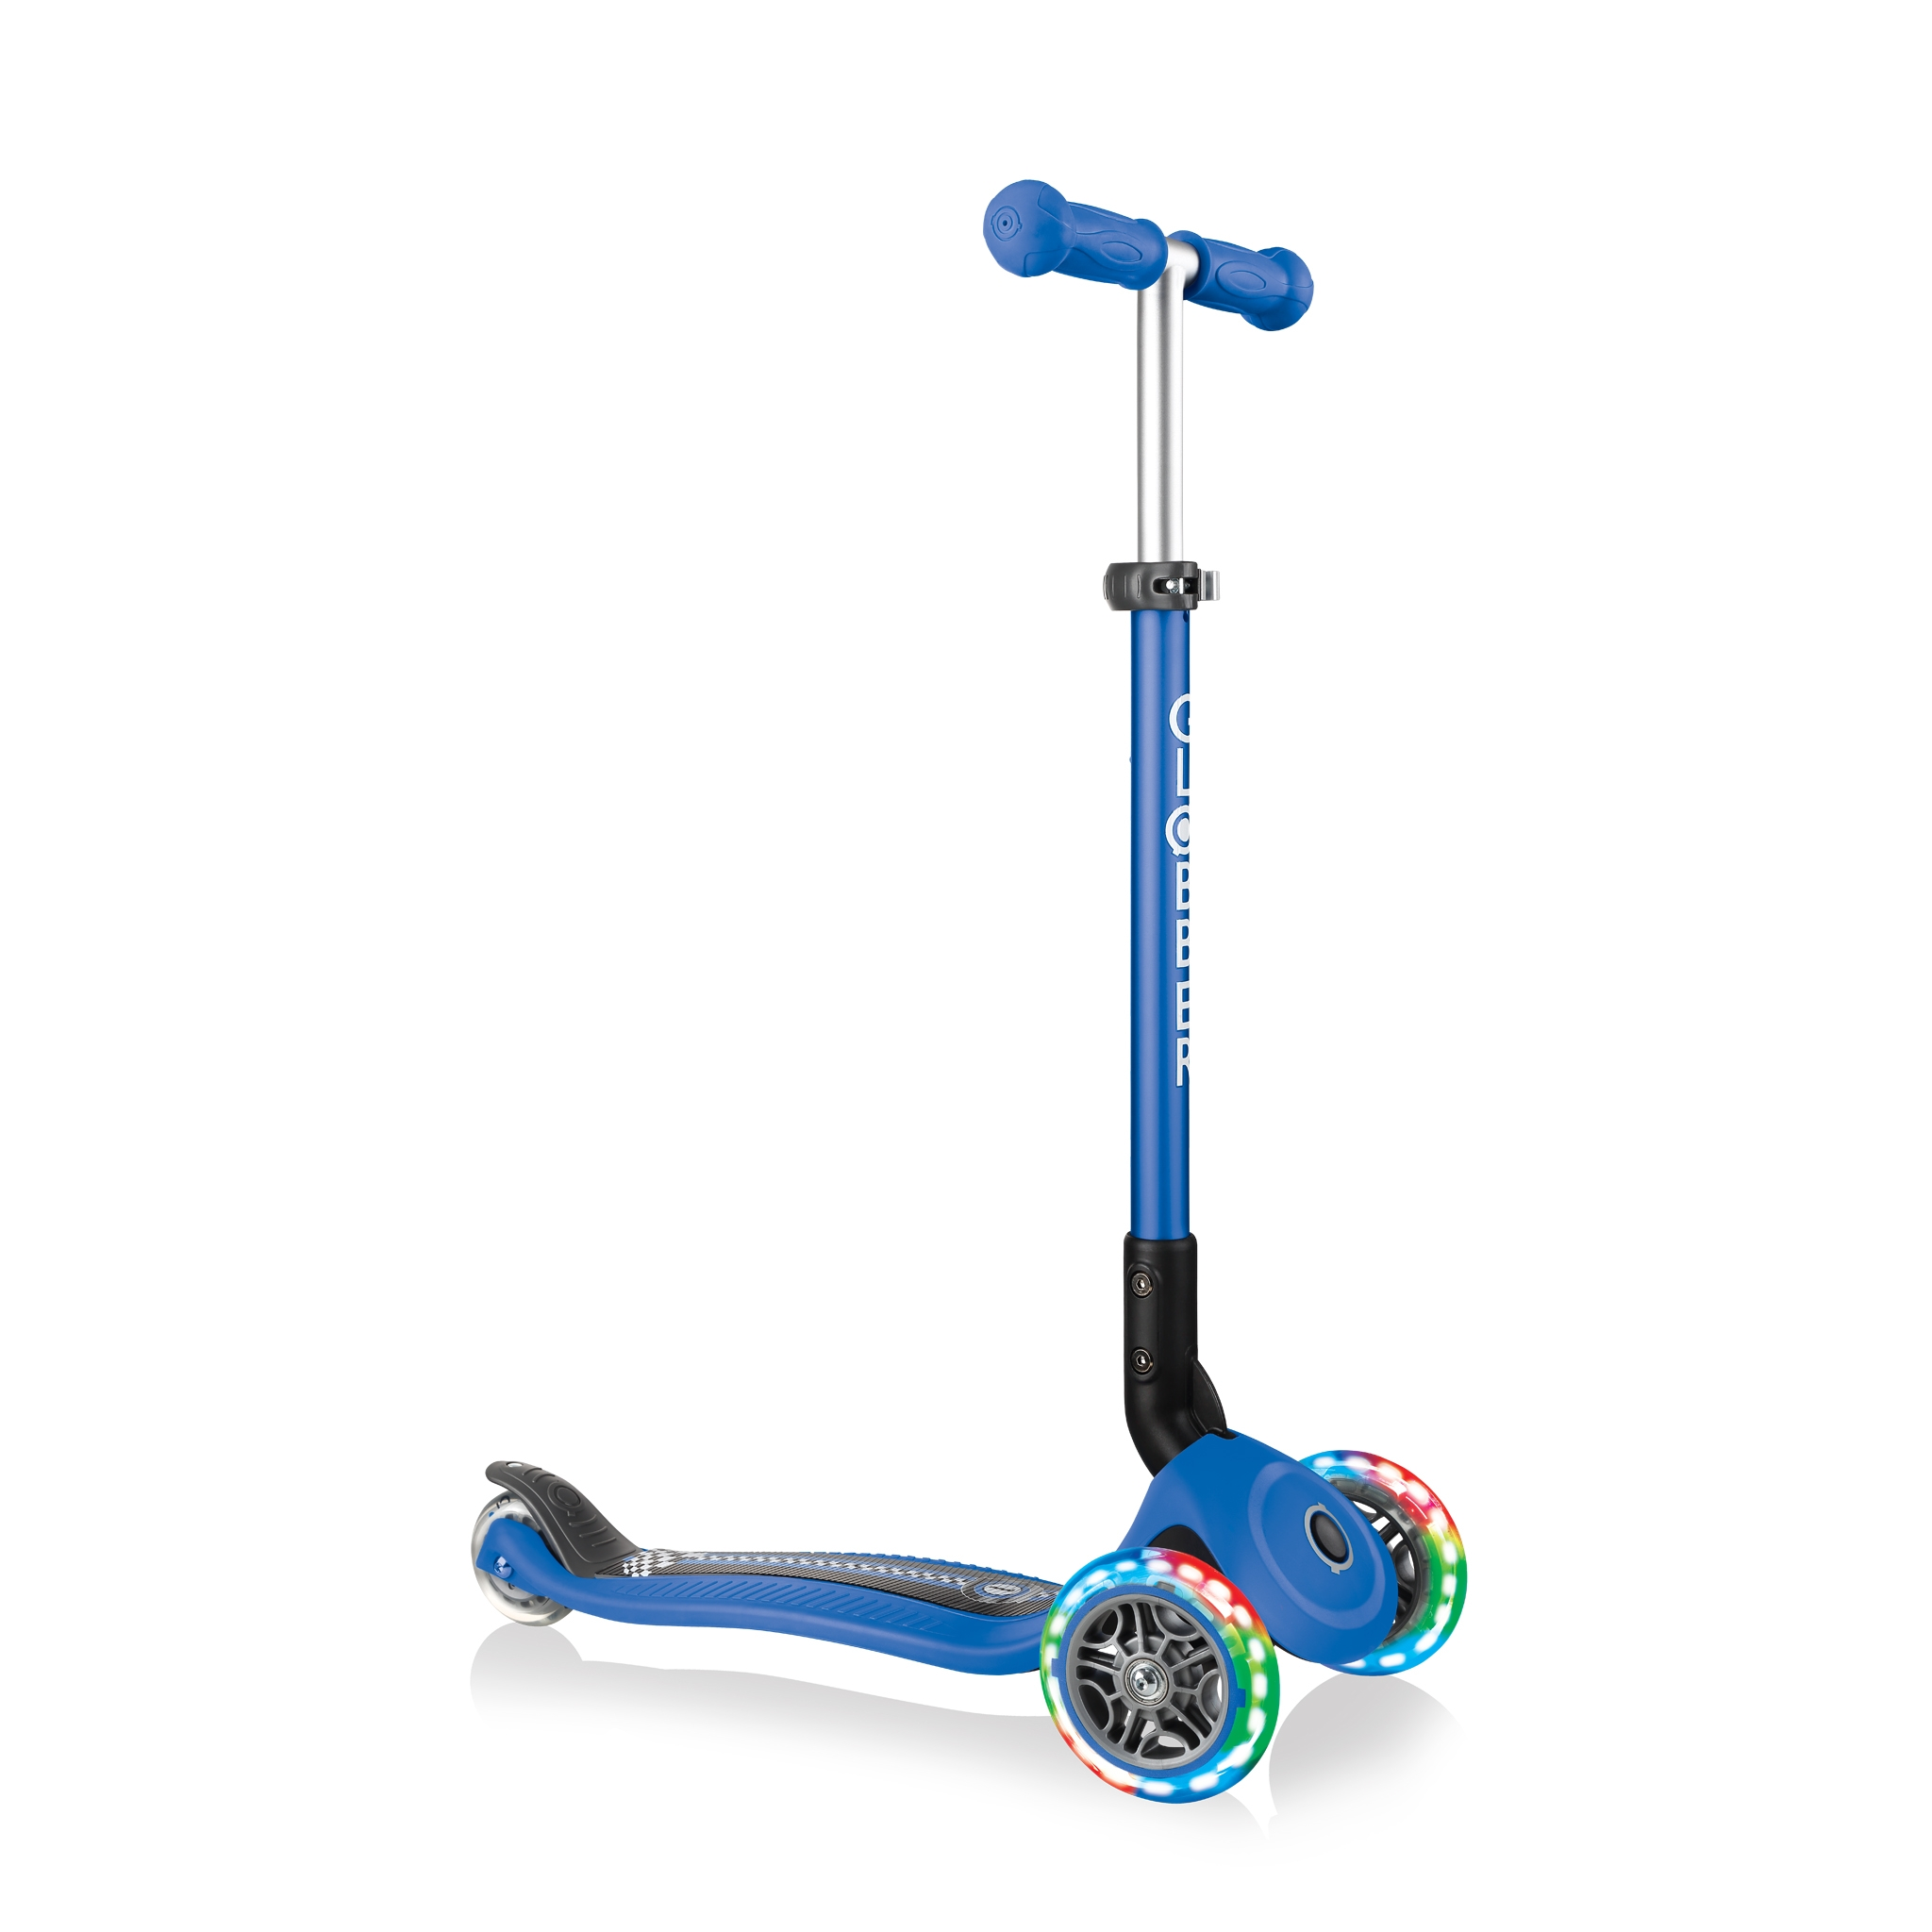 primo-foldable-fantasy-lights-3-wheel-scooter-for-kids 0